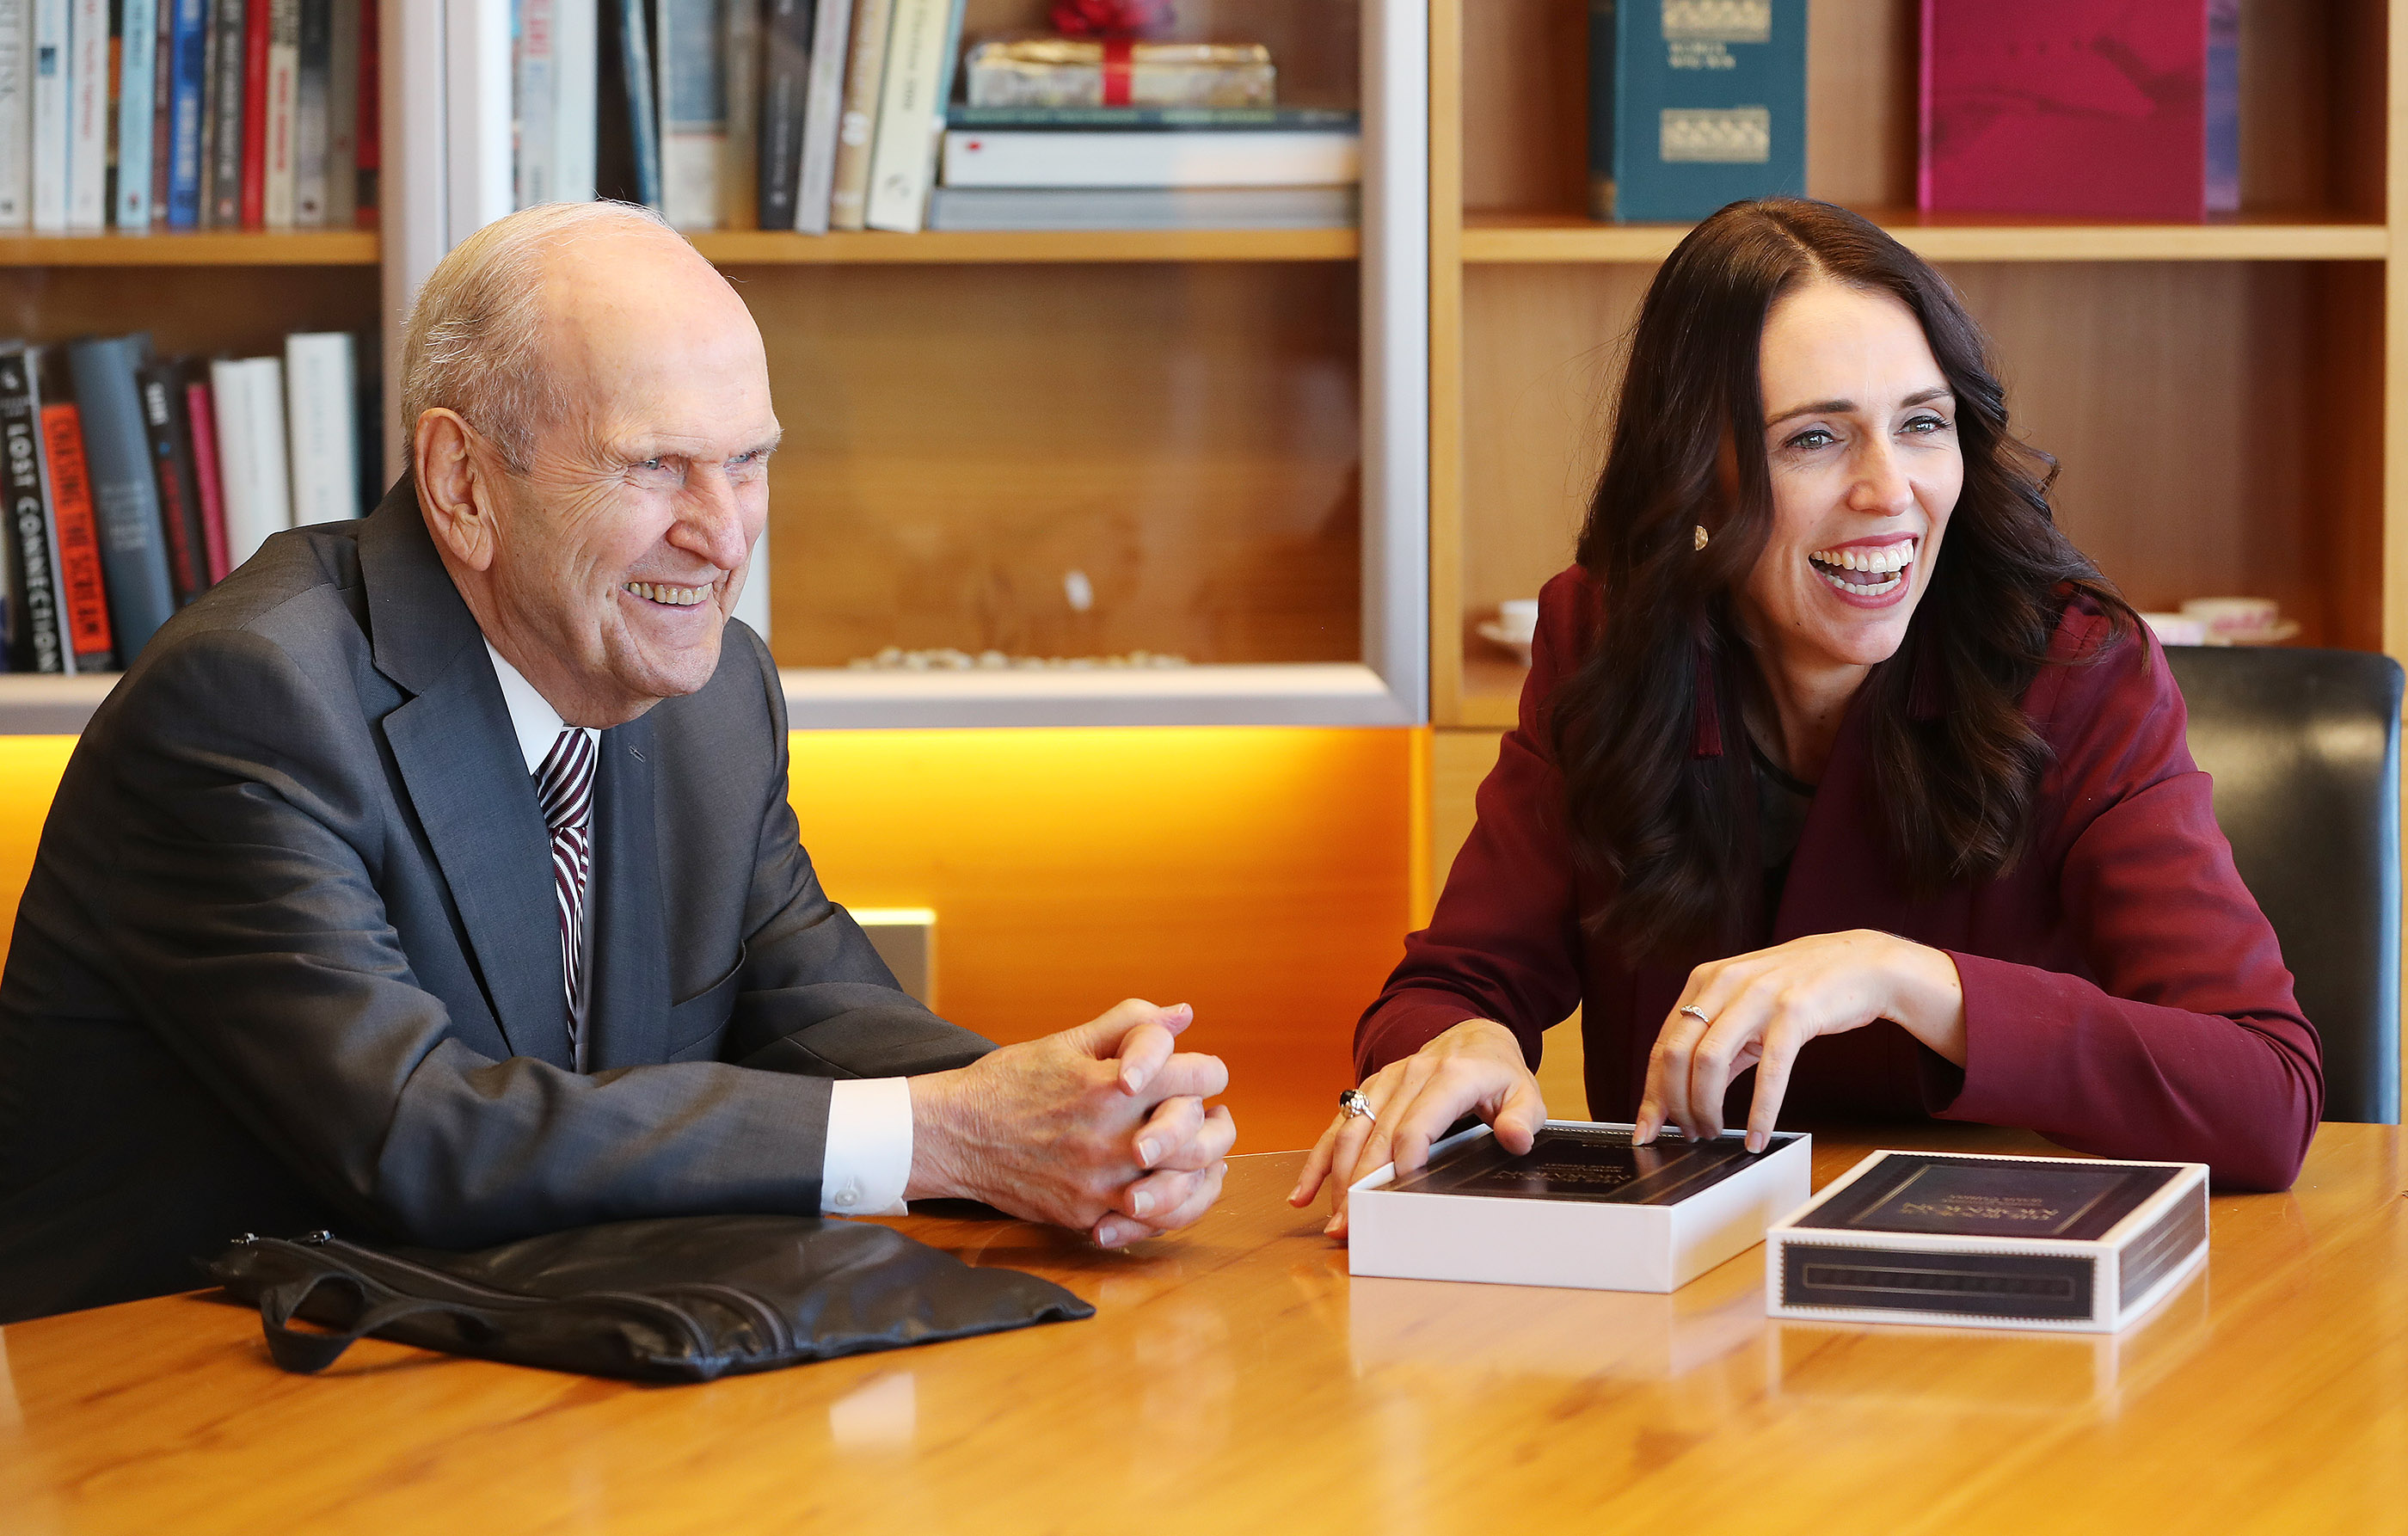 President Russell M. Nelson of The Church of Jesus Christ of Latter-day Saints gives a Book of Mormon to New Zealand Prime Minister Jacinda Ardern in Wellington, New Zealand, on Monday, May 20, 2019.